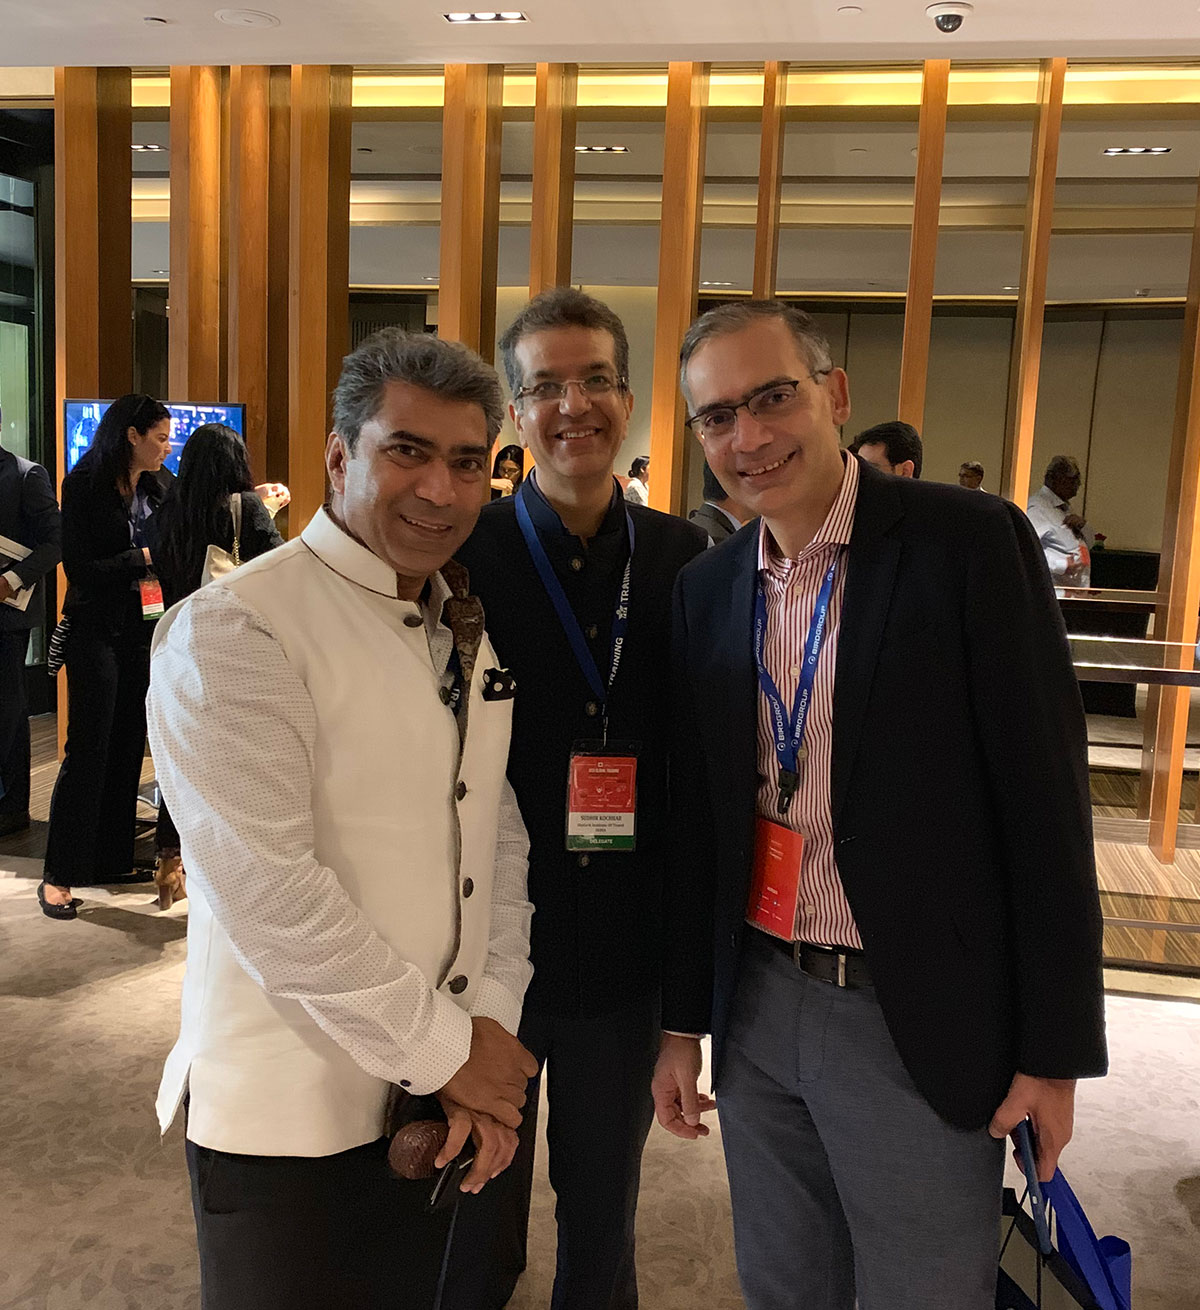 Our Directors Vipan Sharma & Sudhir Kochhar with Deep Kalra, CEO, Make My Trip at IATA Training at IATA Global Training Partner Conference held in New Delhi